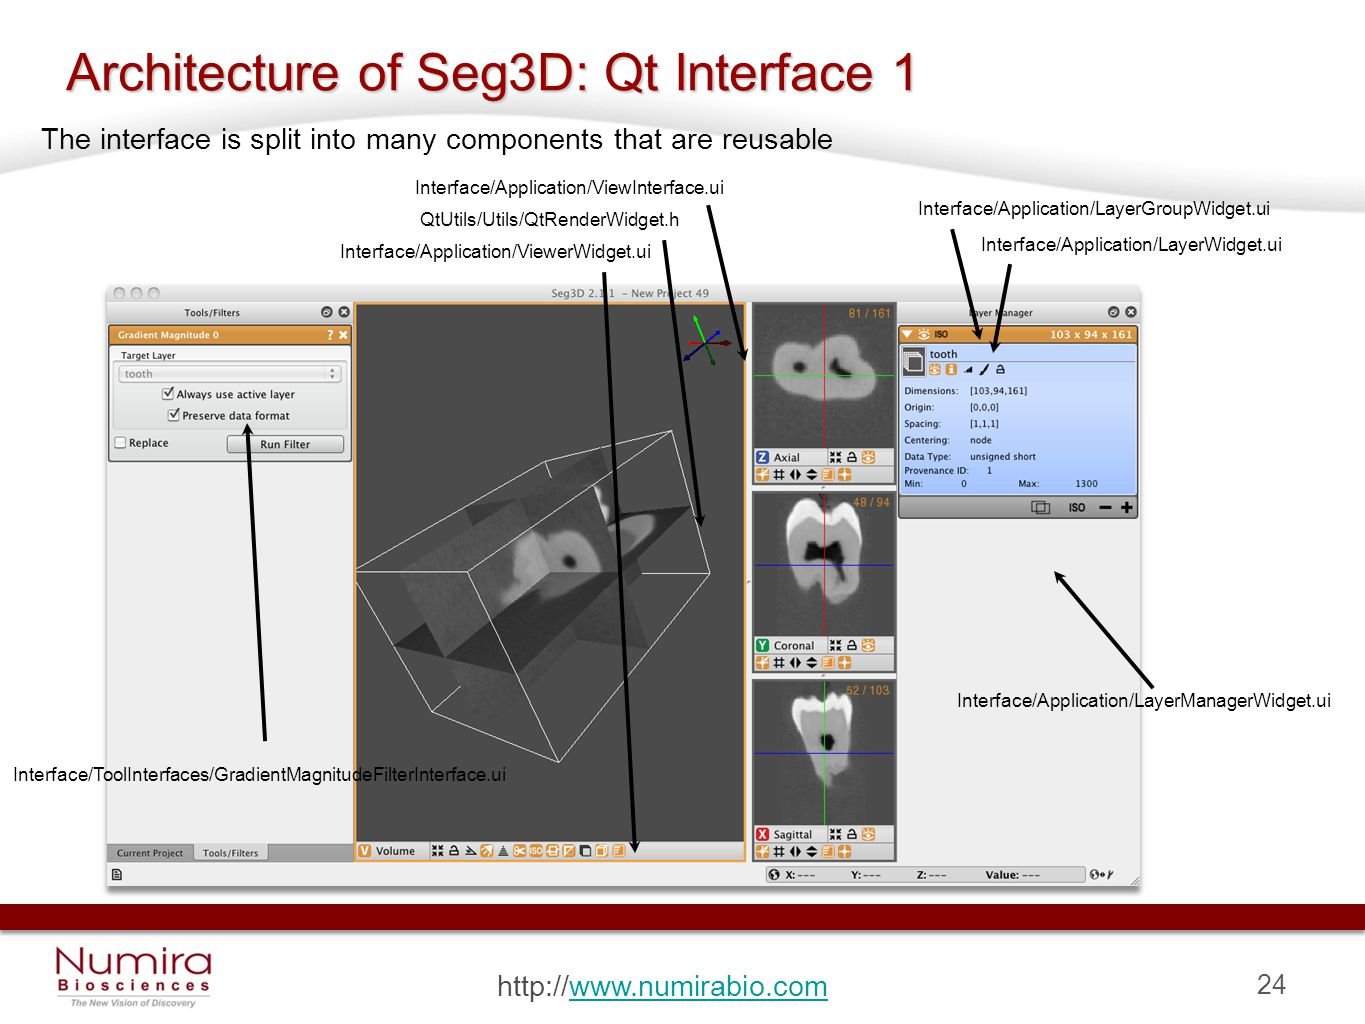 24 http://www.numirabio.comwww.numirabio.com Architecture of Seg3D: Qt Interface 1 Interface/ToolInterfaces/GradientMagnitudeFilterInterface.ui Interface/Application/LayerGroupWidget.ui Interface/Application/LayerWidget.ui Interface/Application/LayerManagerWidget.ui Interface/Application/ViewInterface.ui Interface/Application/ViewerWidget.ui QtUtils/Utils/QtRenderWidget.h The interface is split into many components that are reusable